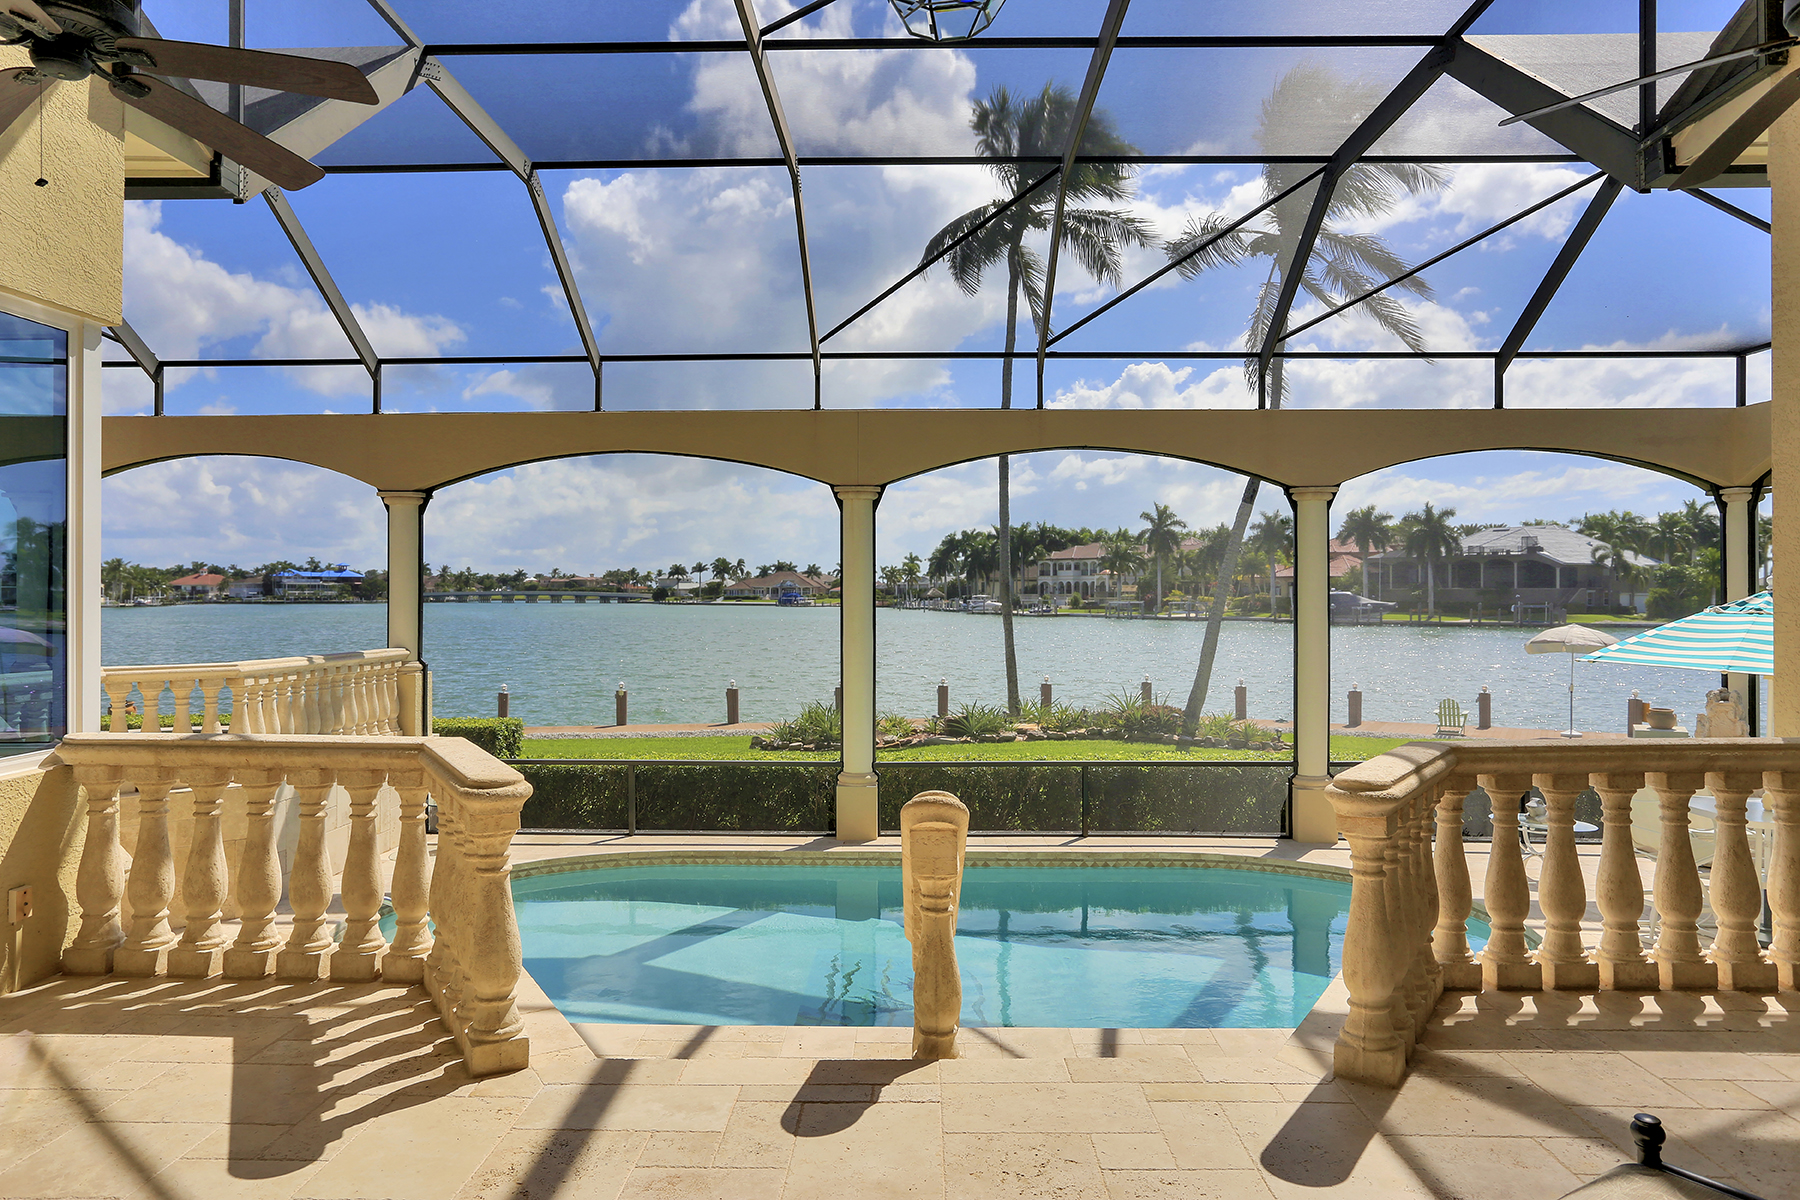 Single Family Homes for Sale at MARCO ISLAND 875 S Heathwood Drive Marco Island, Florida 34145 United States